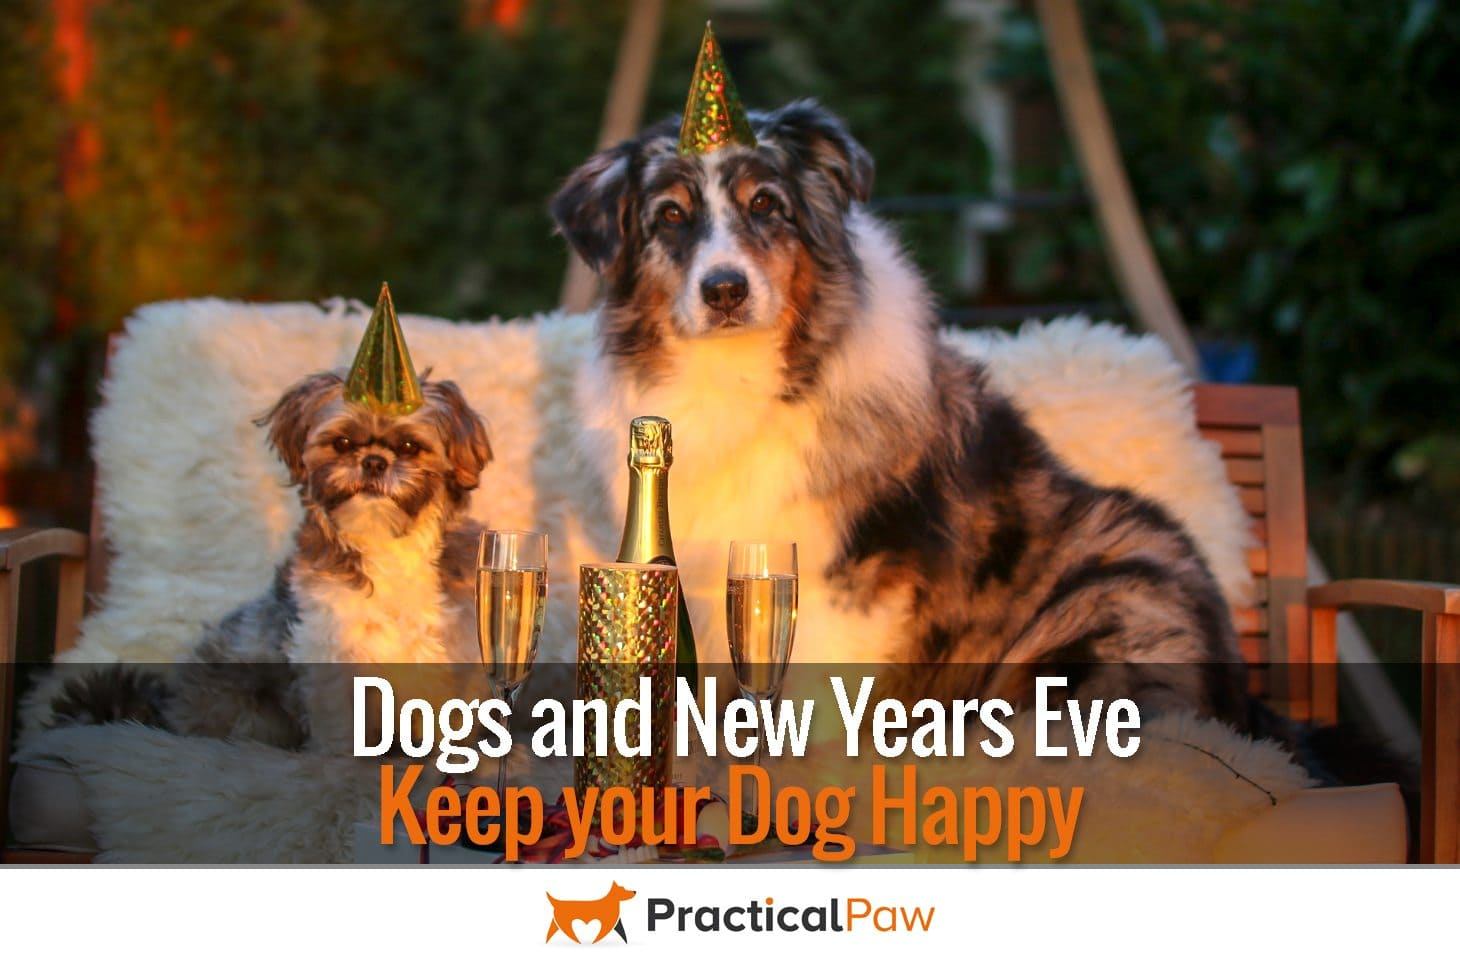 Dogs and New Years Eve - Keep your Dog Happy